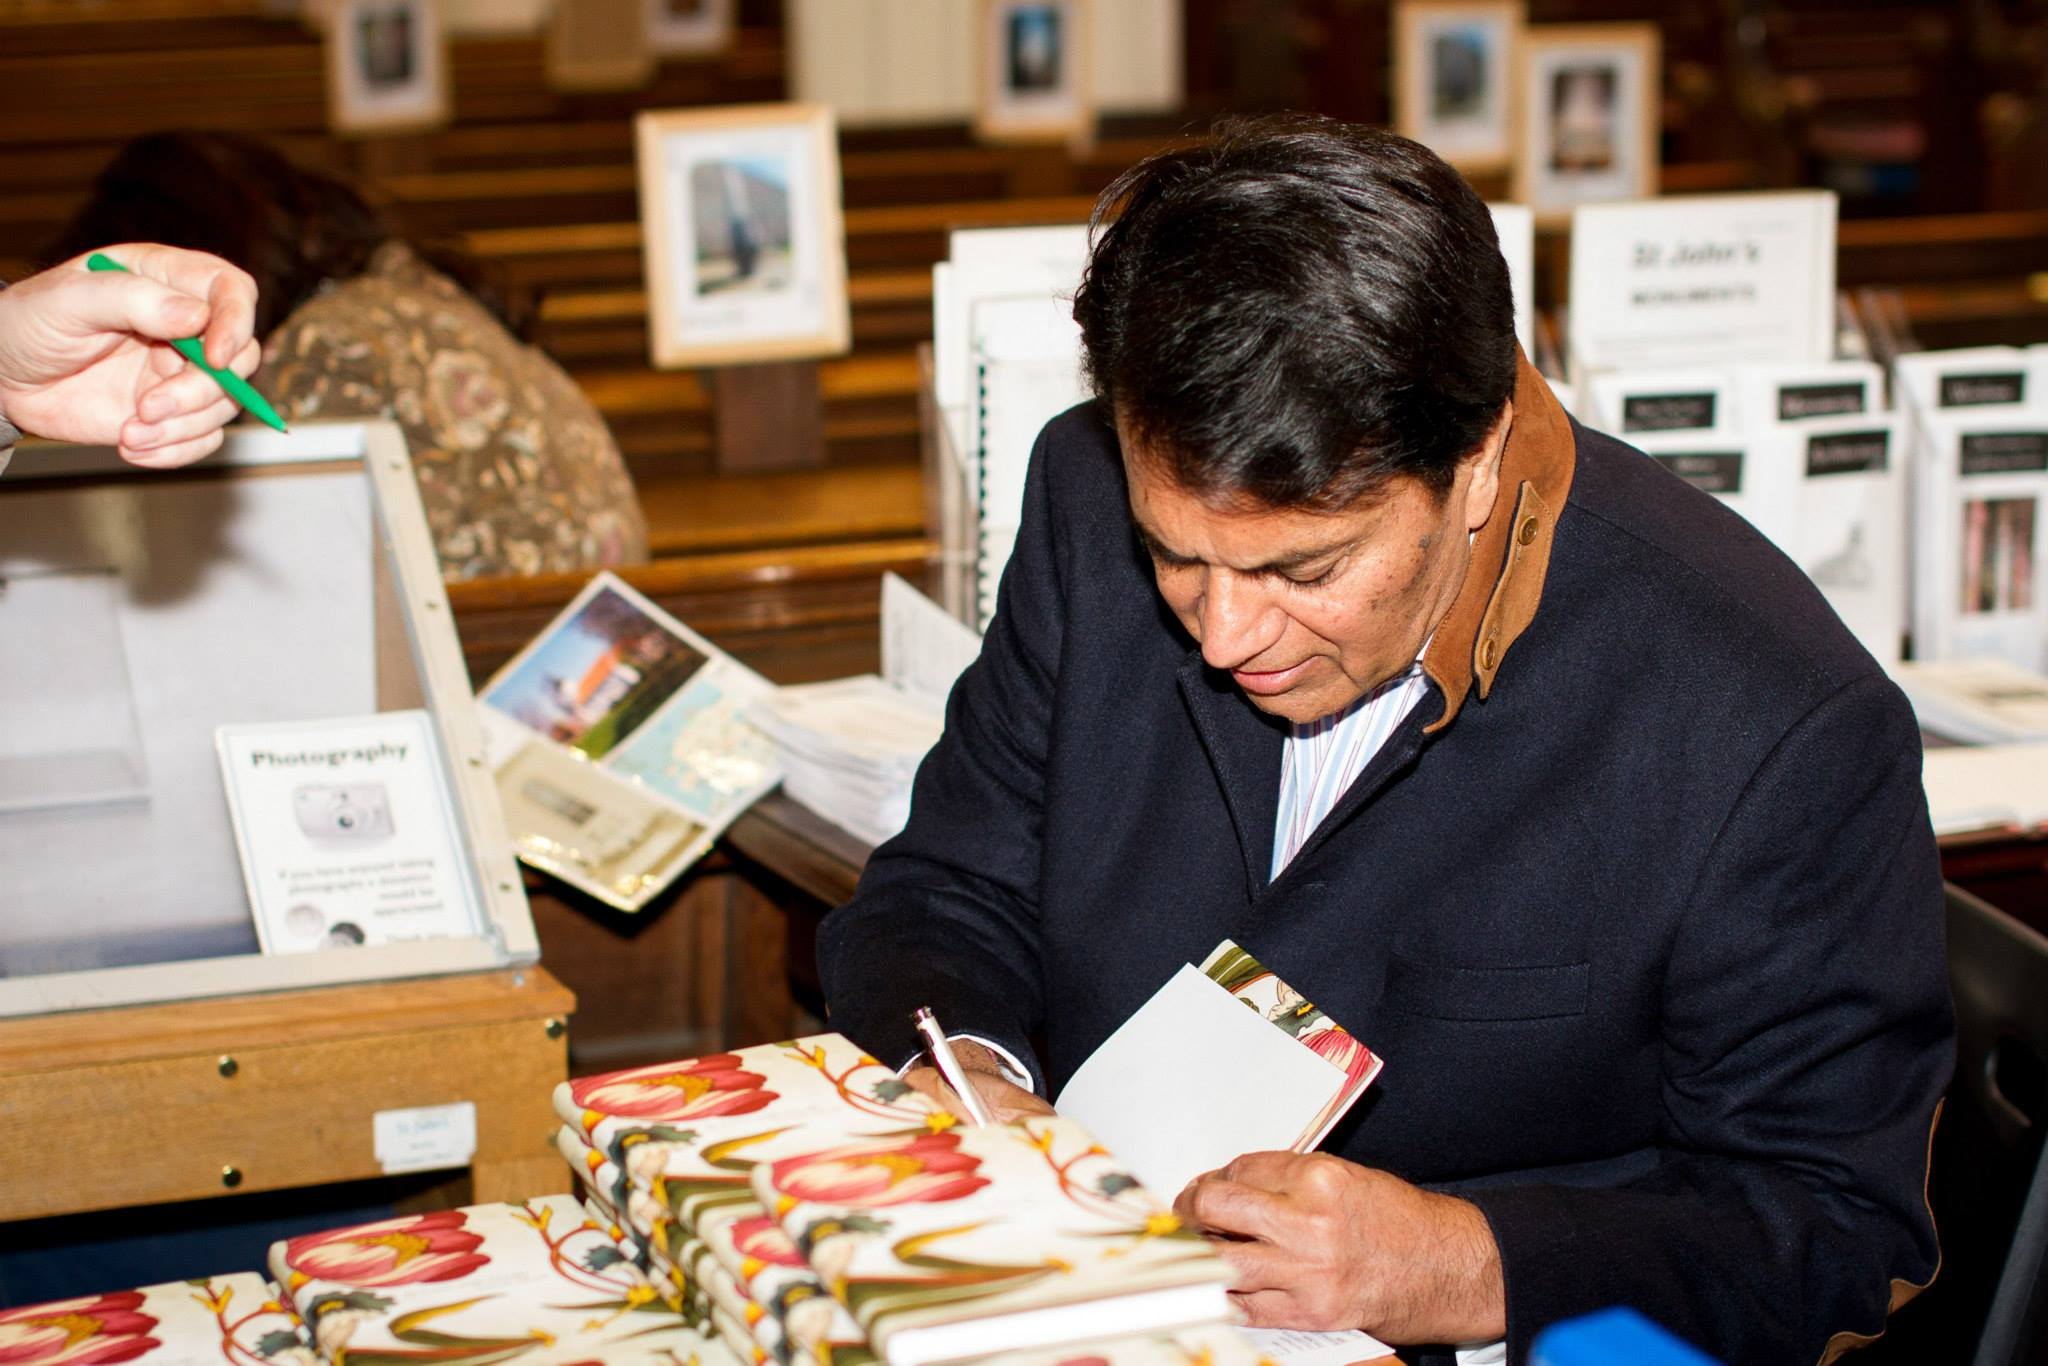 Book signing at the festival